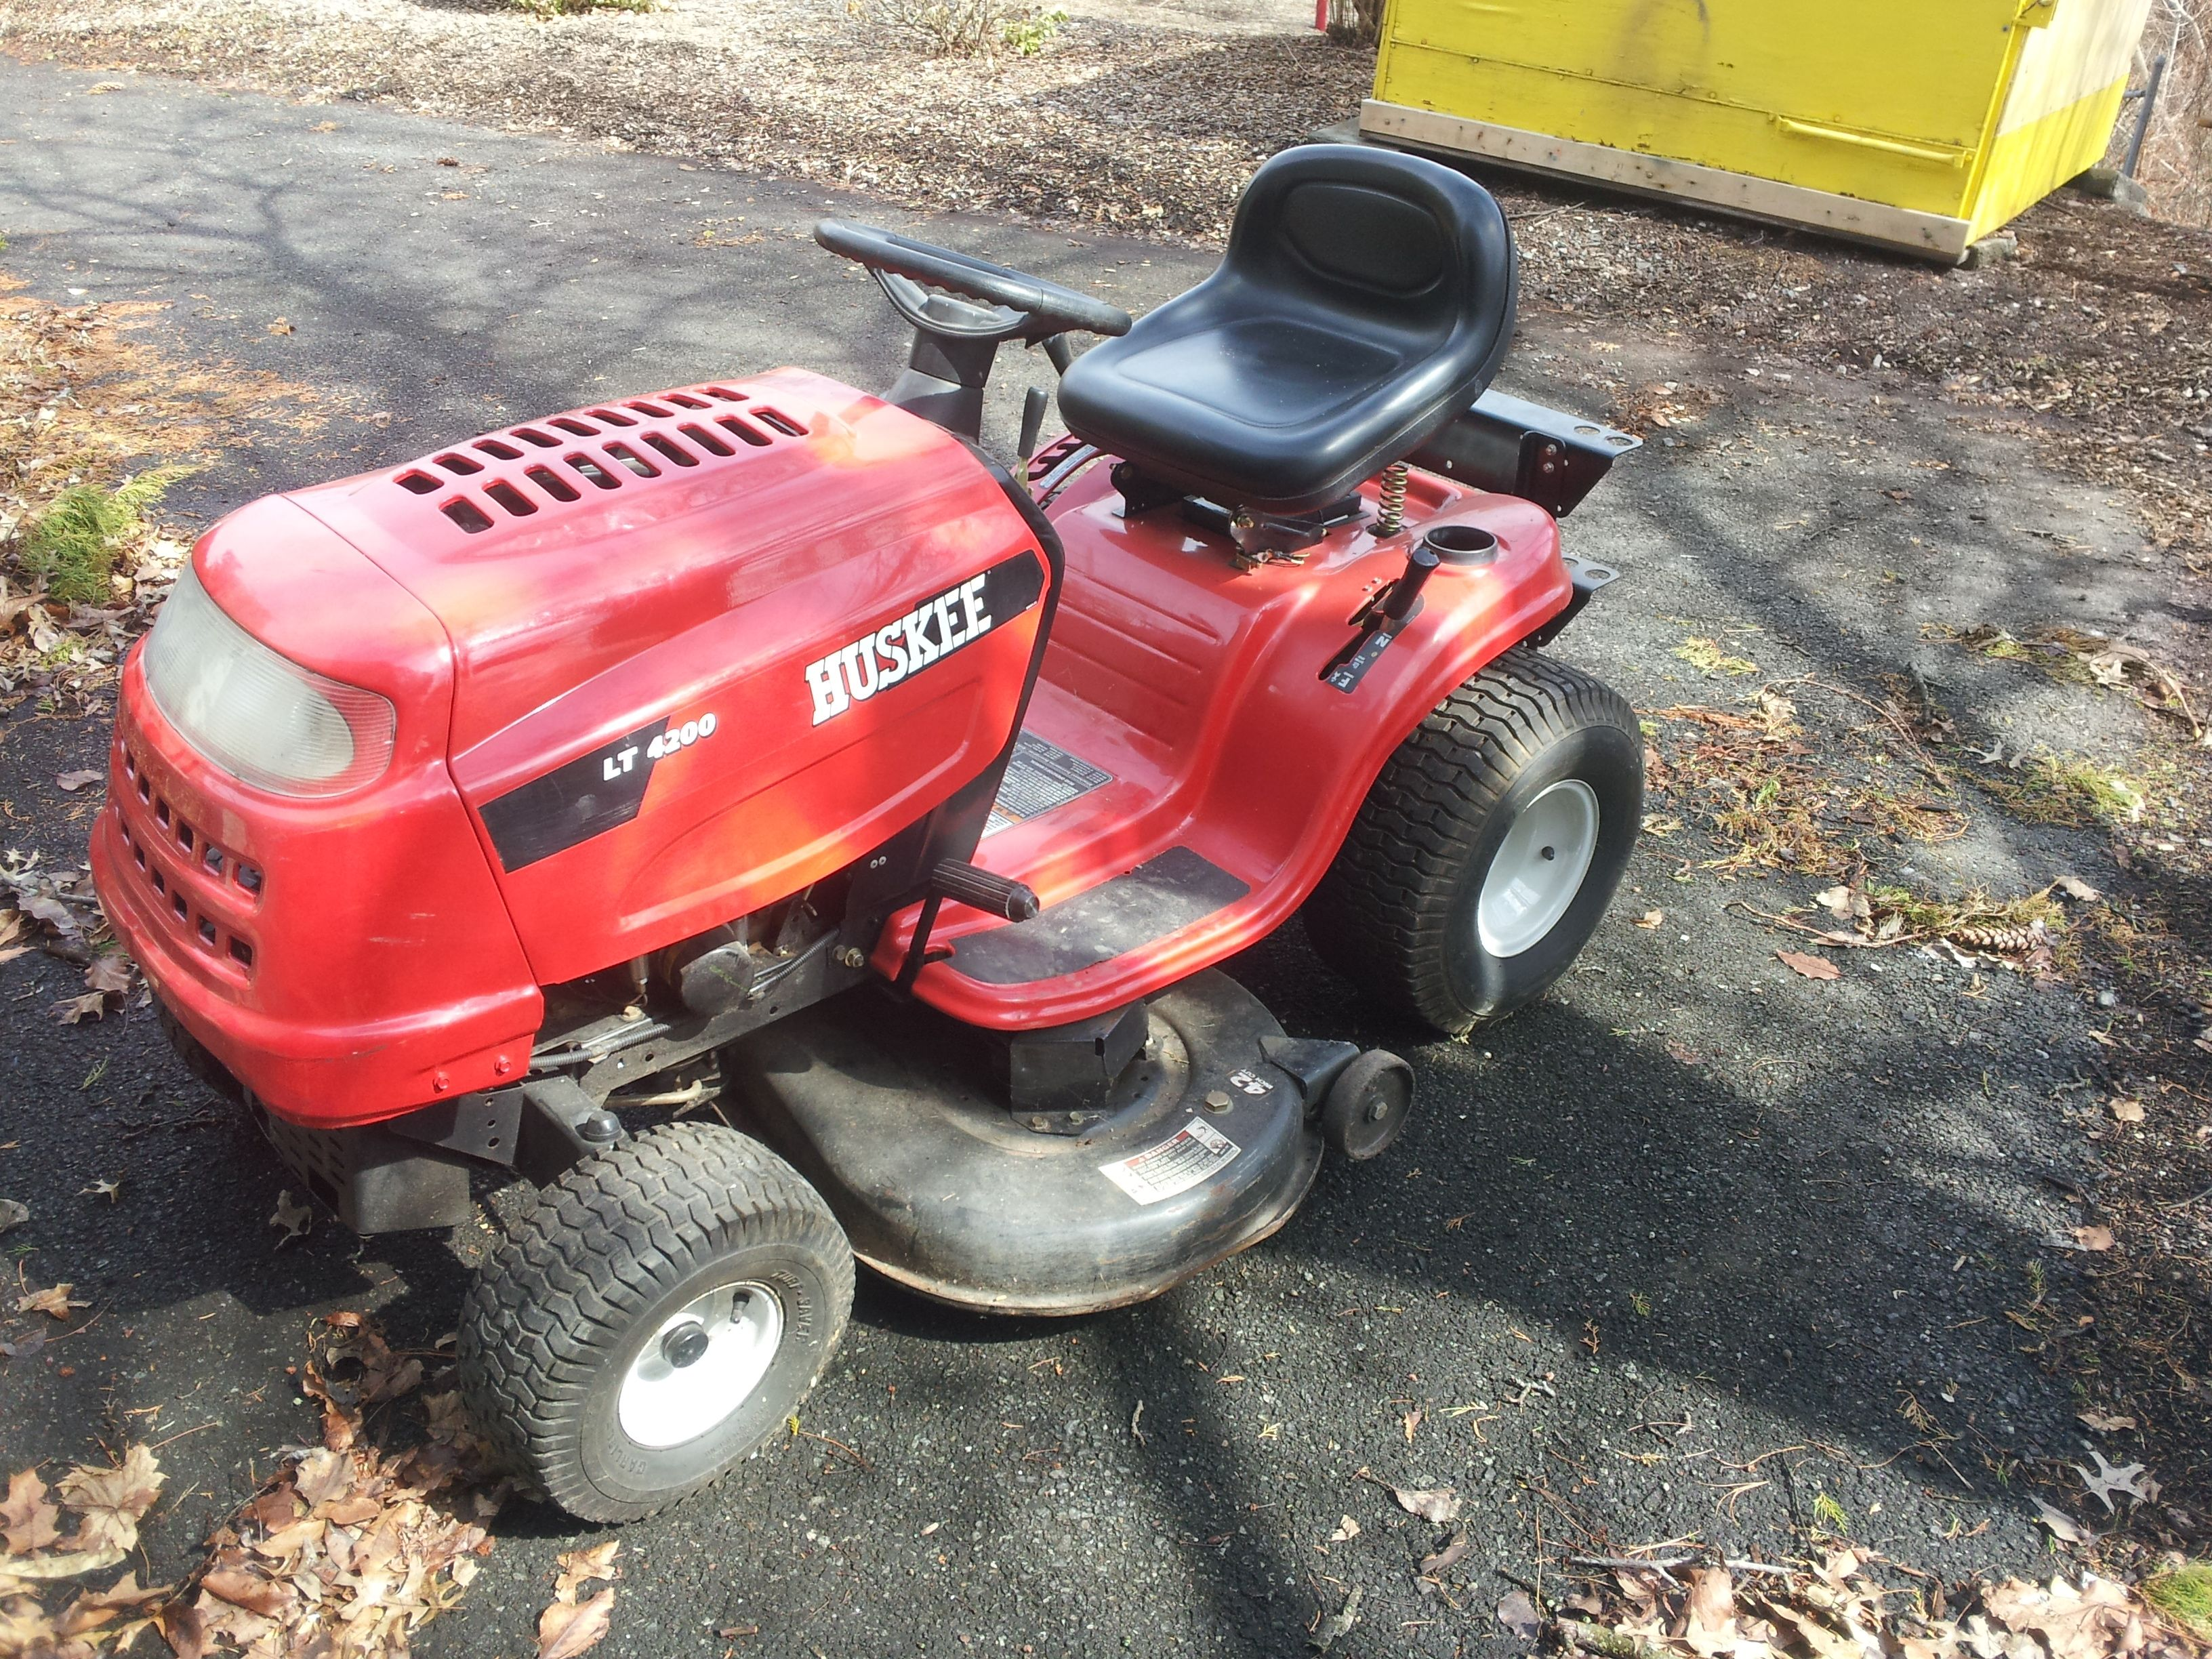 Huskee LT 4200 Riding Mower for sale on municibid